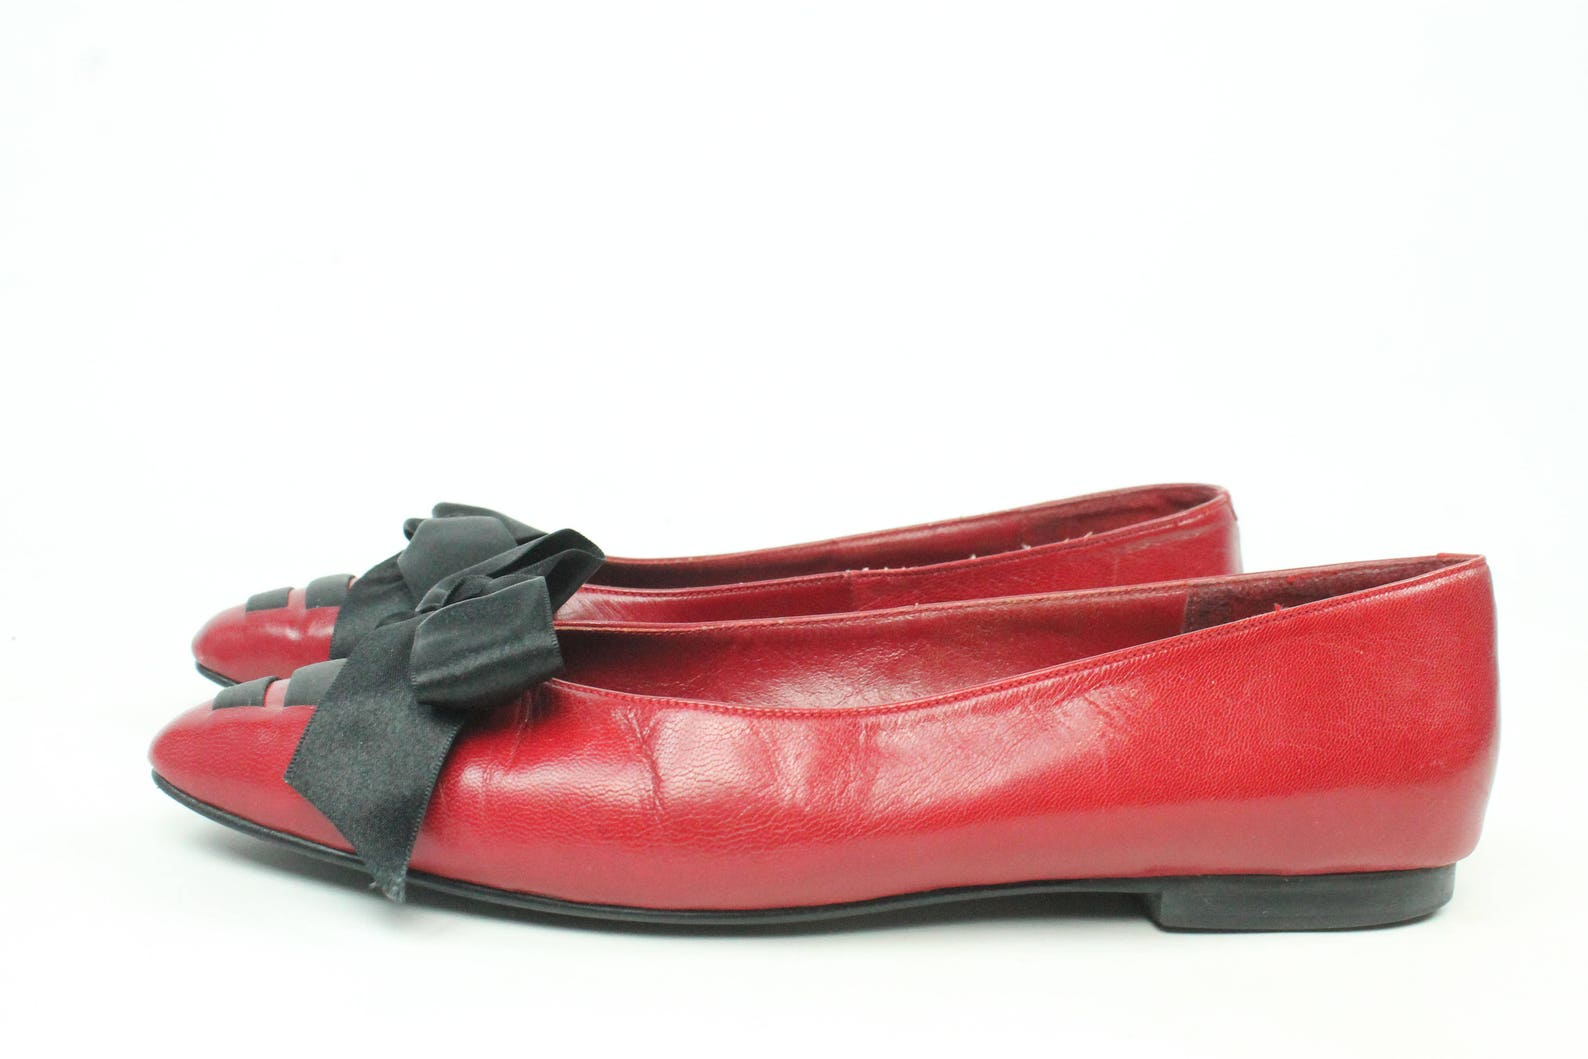 vintage 80s ballet flats red leather satin bows pointed toe slip ons 1980s size 8 shoes pumps lindsey black